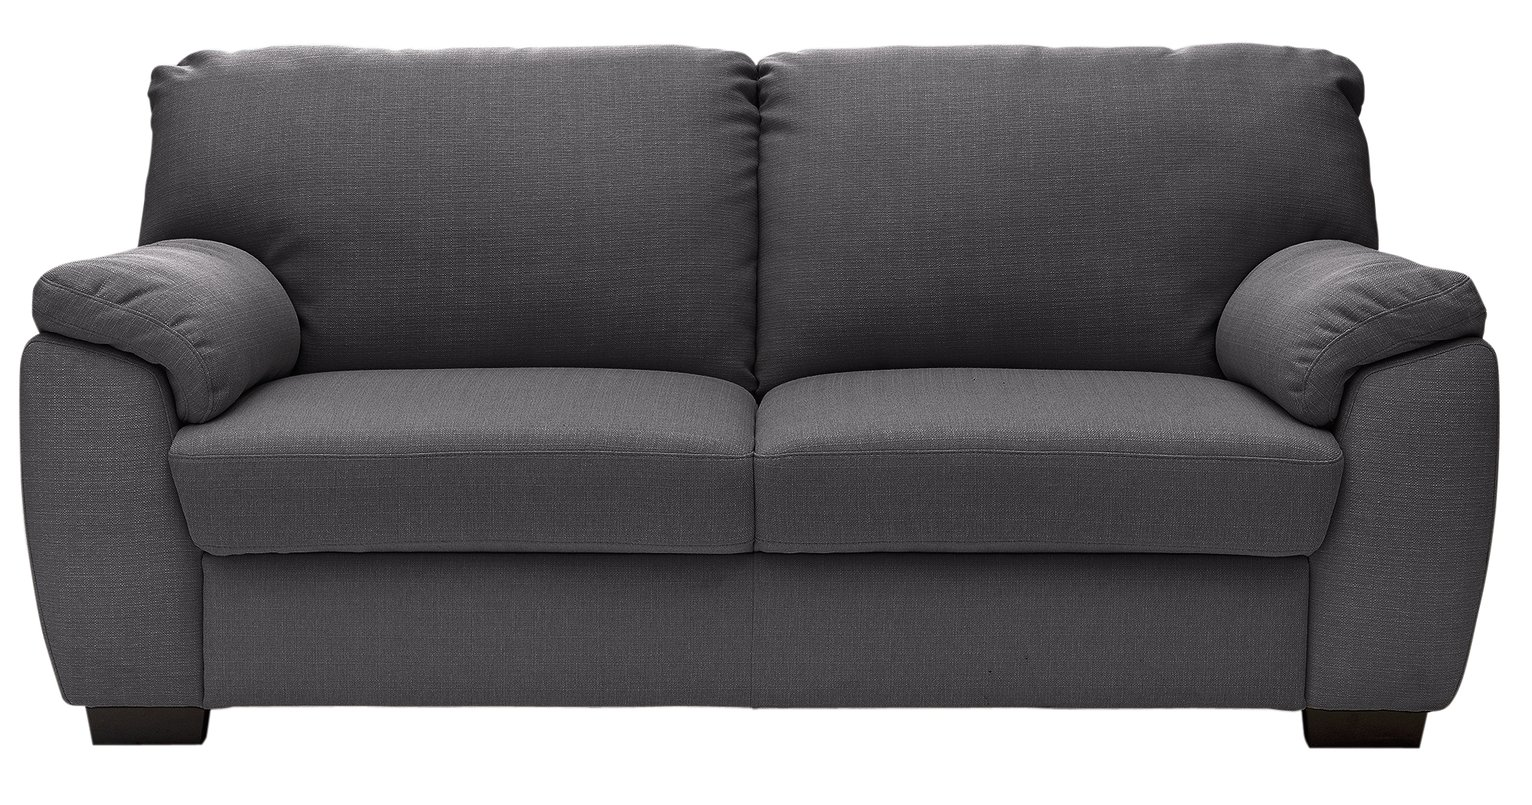 Enjoyable Argos Home Milano 3 Seater Fabric Sofa Charcoal 4878537 Pdpeps Interior Chair Design Pdpepsorg